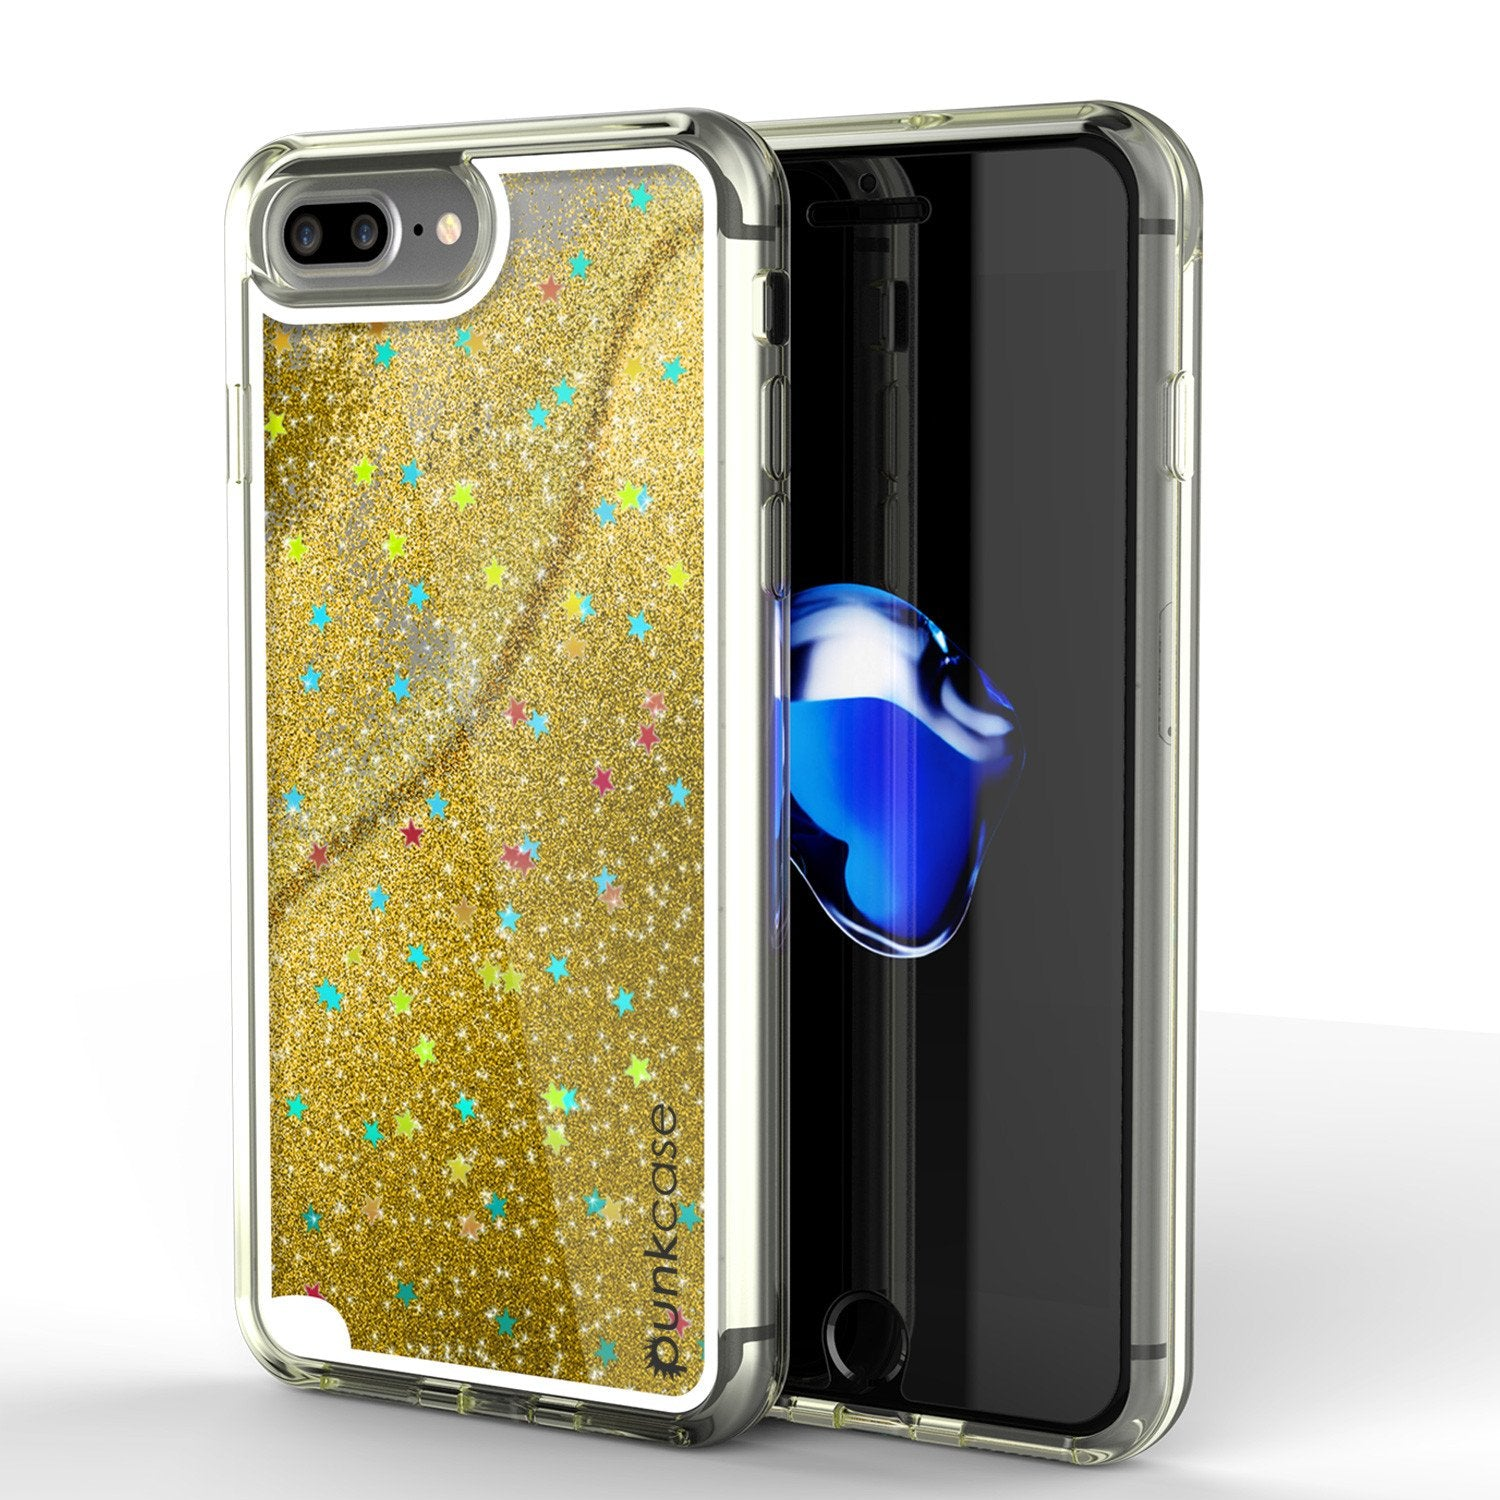 iPhone 7 Plus Case, PunkСase LIQUID Gold Series, Protective Dual Layer Floating Glitter Cover